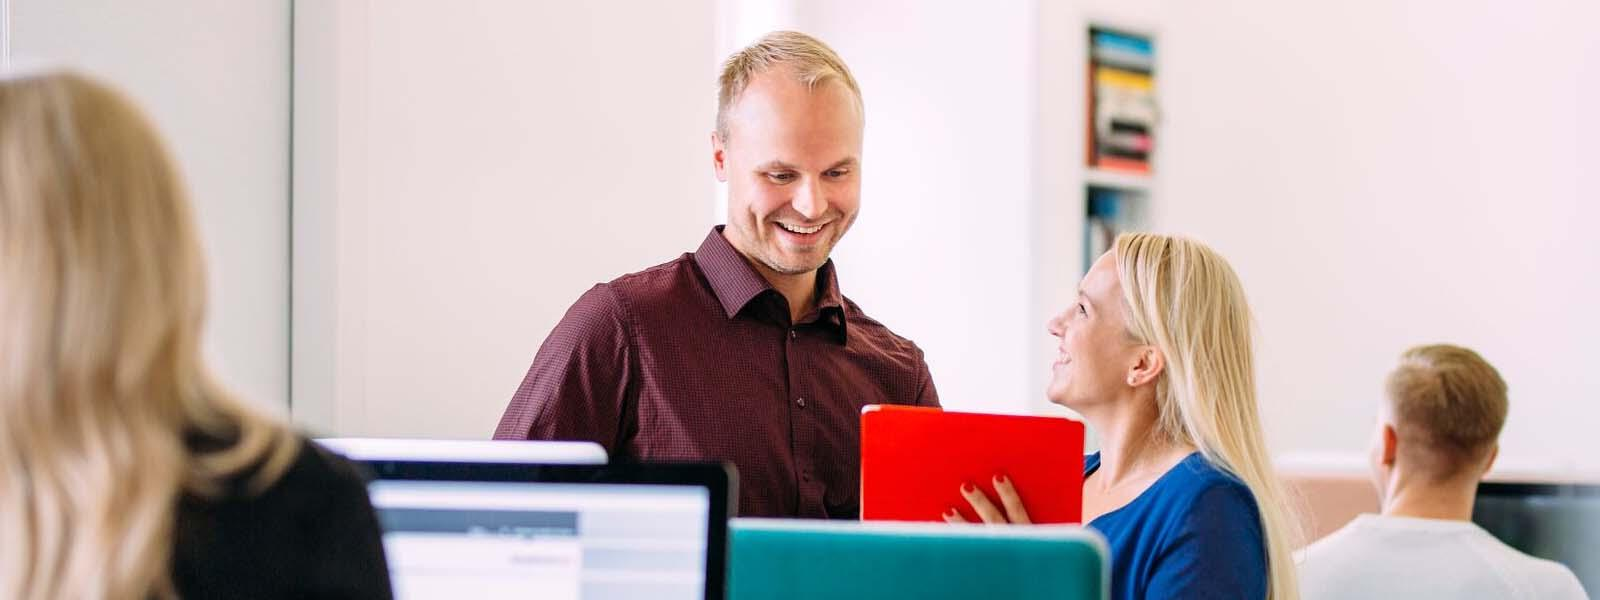 Woman with red folder talking to a man and smiling